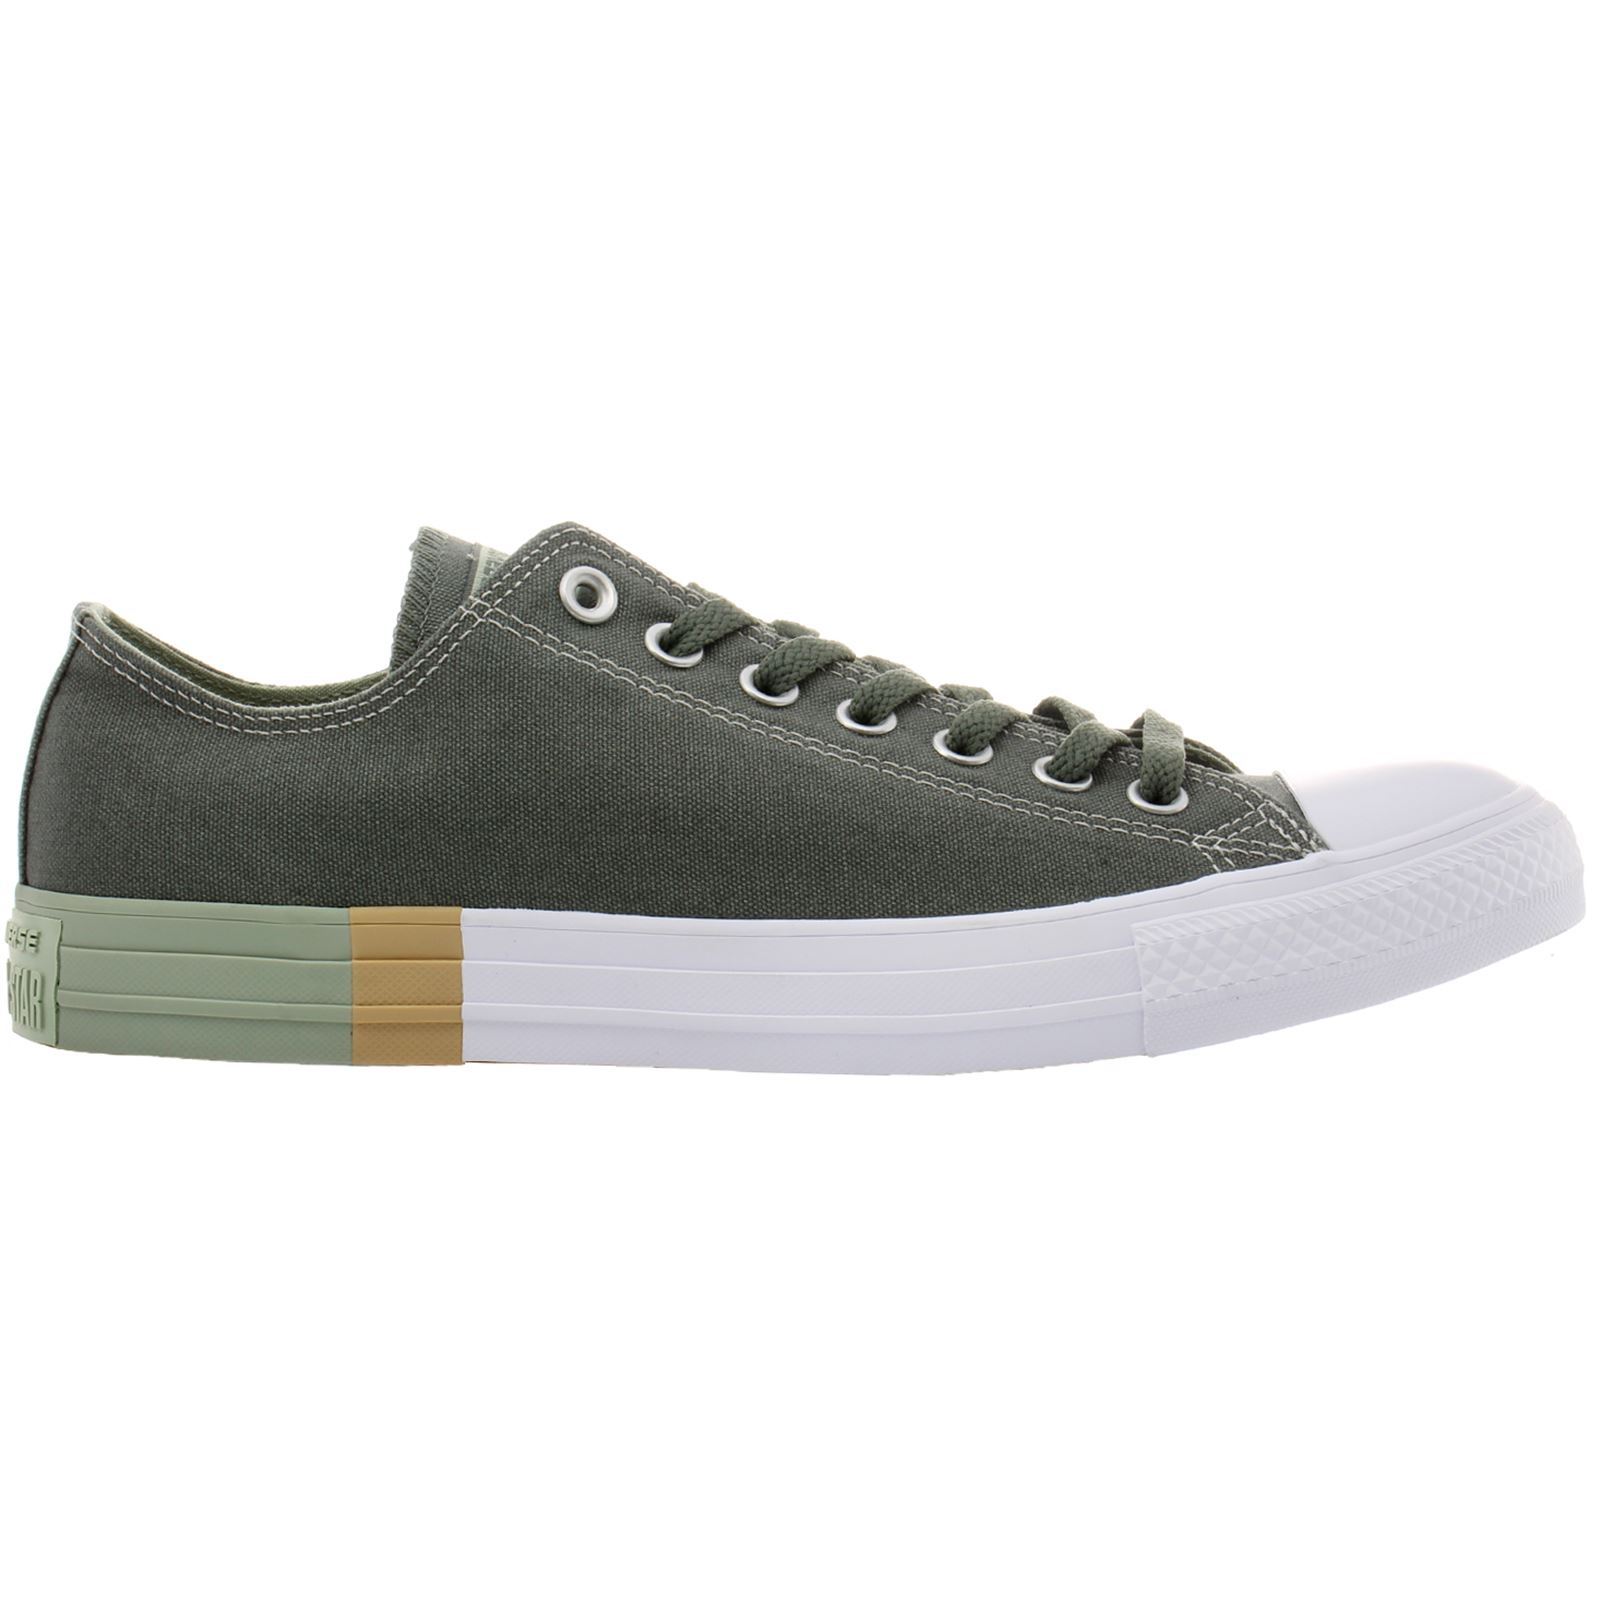 Converse Chuck Taylor All Star Ox River Rock Sage Womens Canvas Low top Trainers